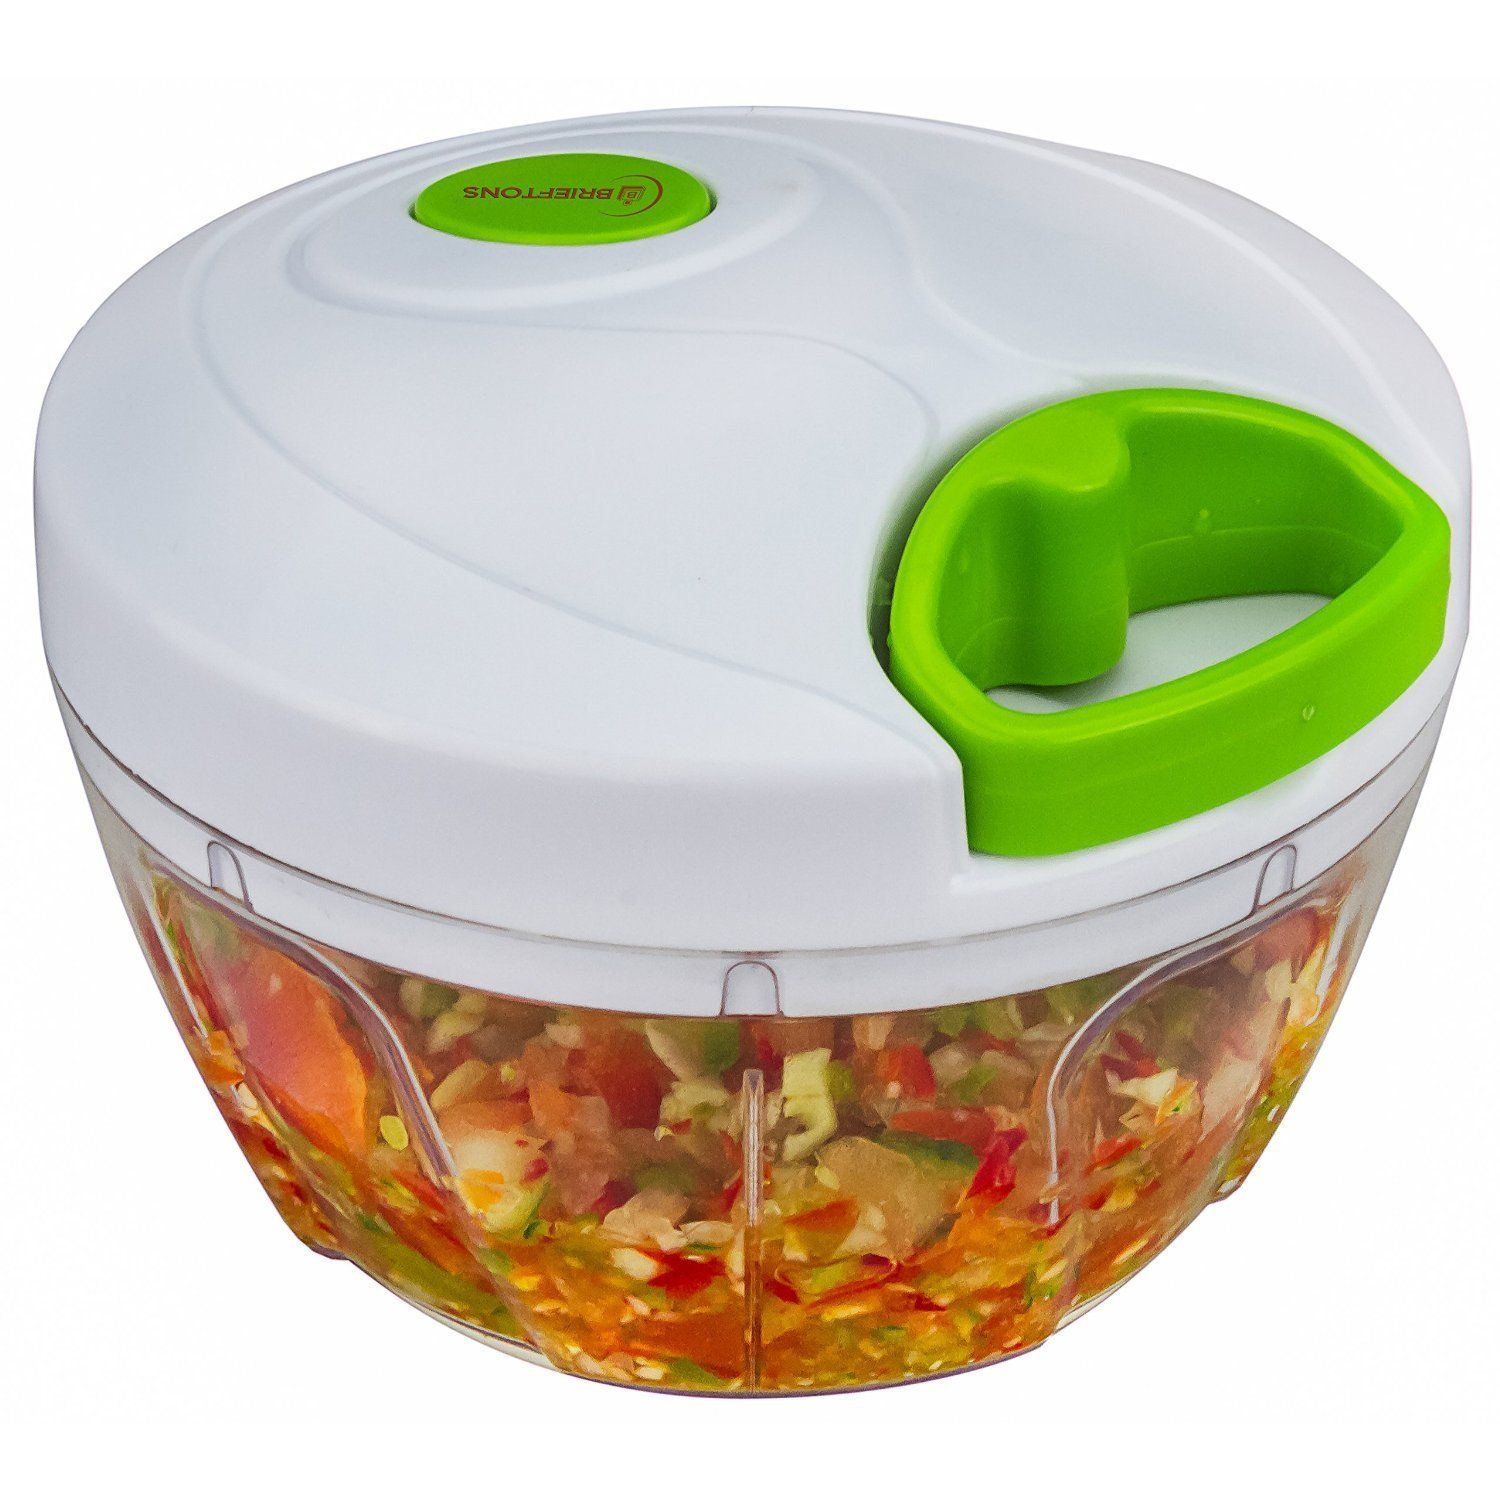 Amazon.com: Brieftons Manual Food Chopper: Compact & Powerful Hand Held Vegetable  Chopper / Mincer / Blender to Chop Fruits, Vegetables, Nuts, Herbs, ...